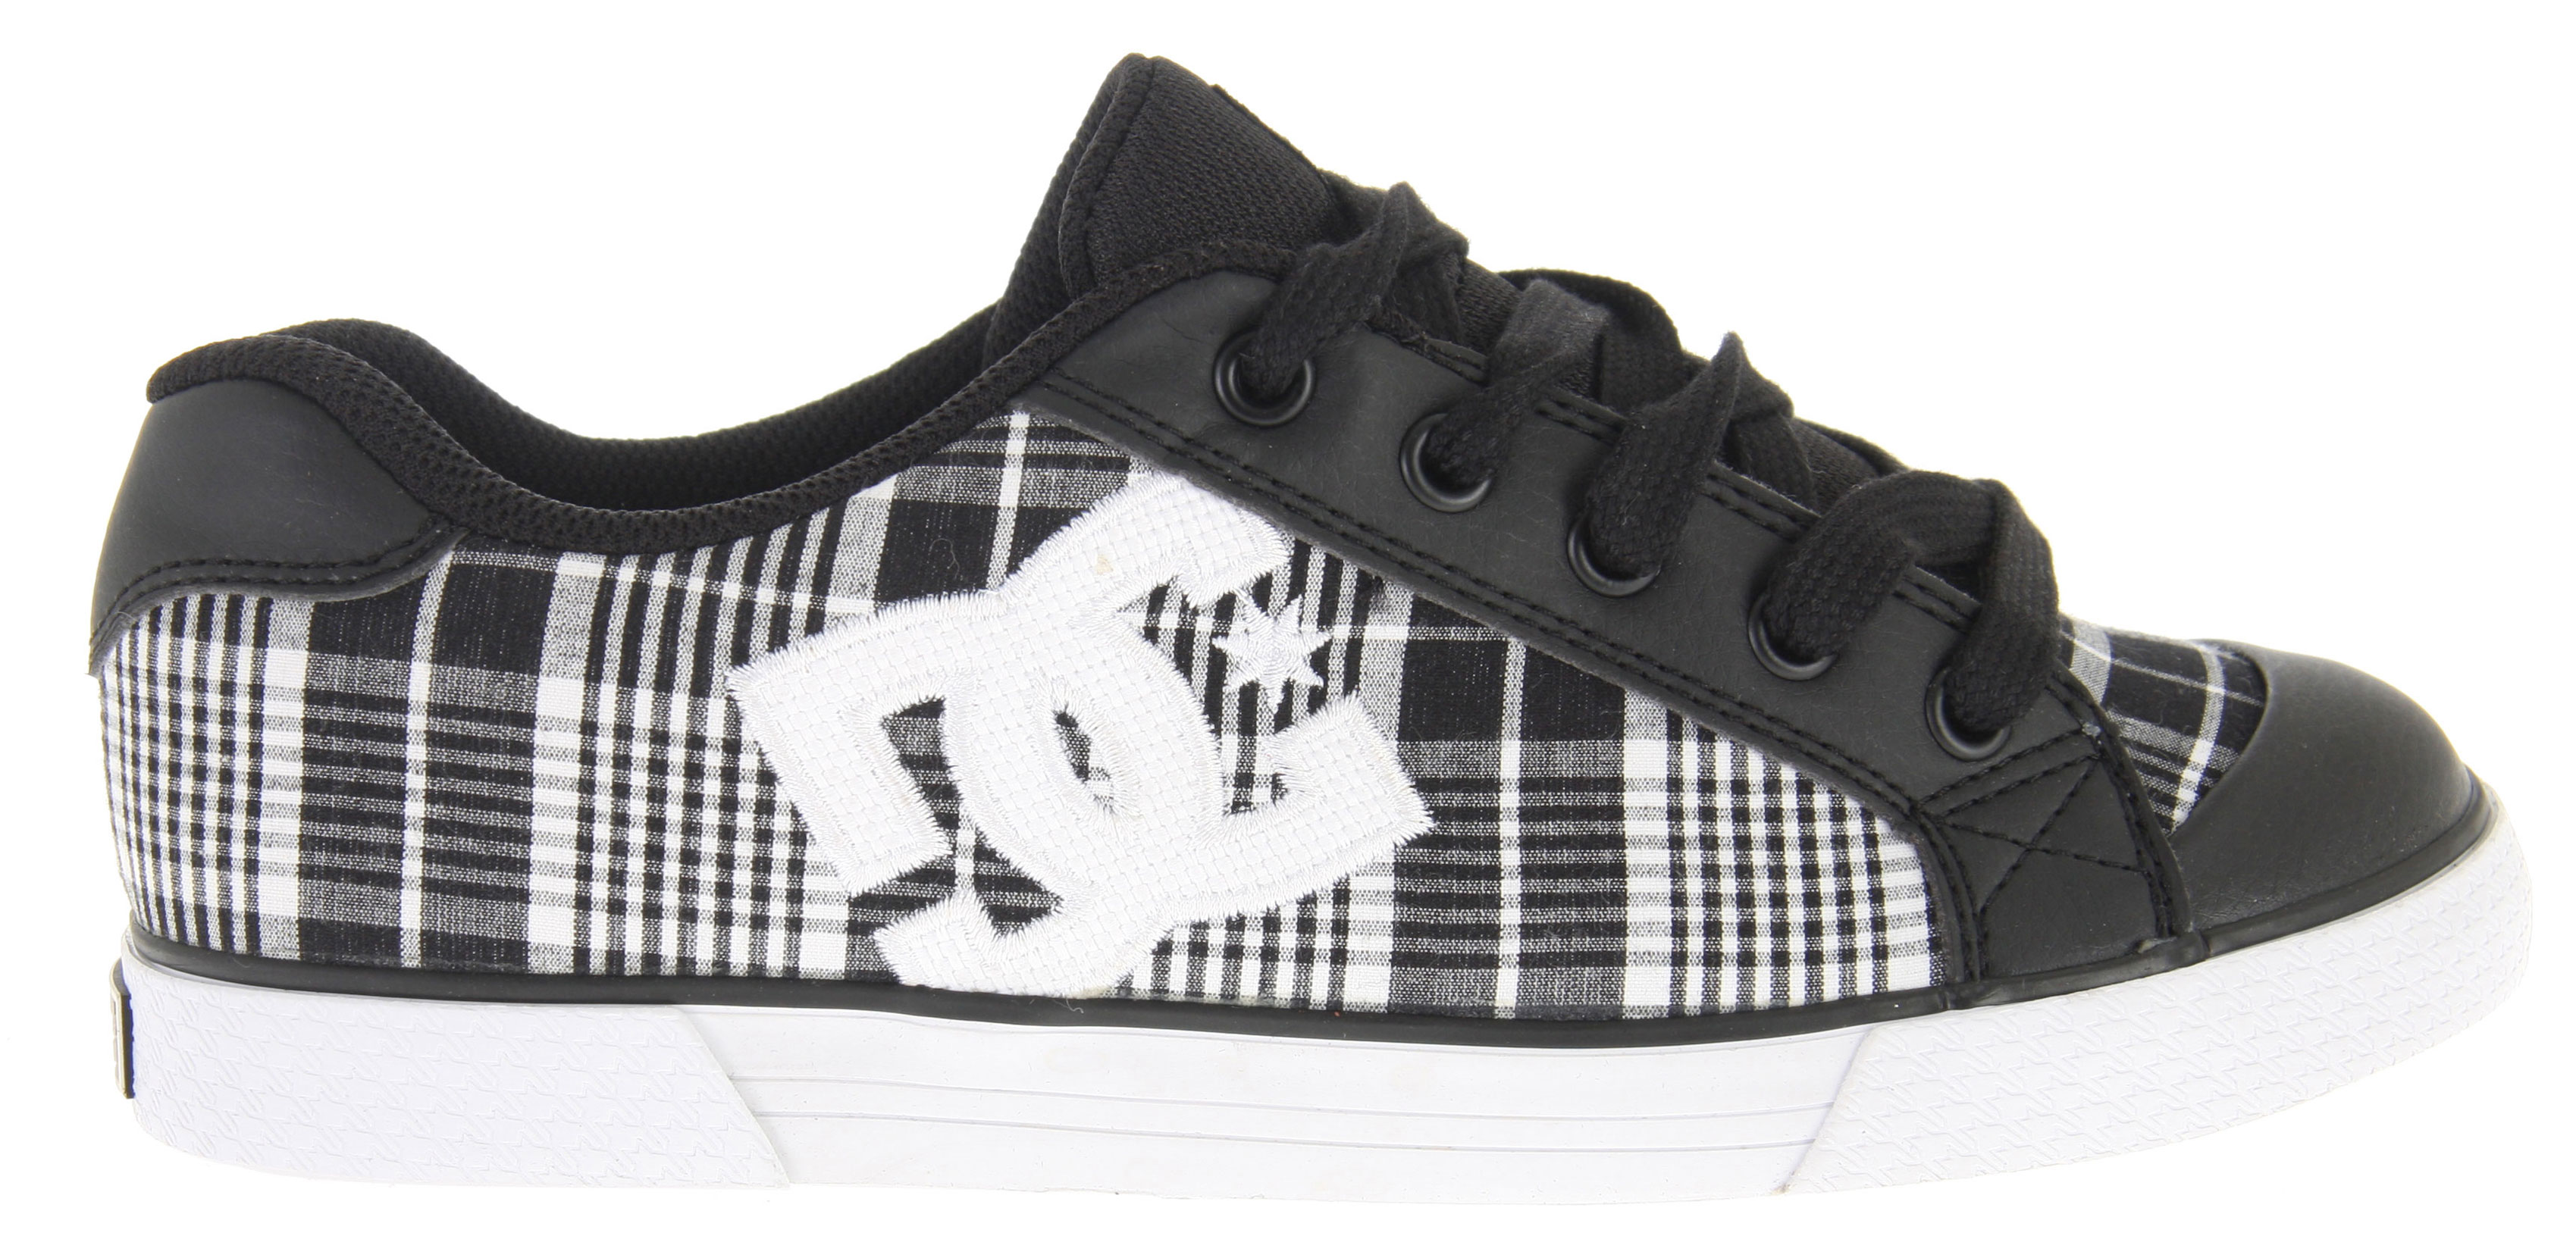 Skateboard Key Features of the DC Chelsea Skate Shoes: Synthetic leather or synthetic nubuck upper Lightweight jacquard upper Eyelets on medial side Foam-padded tongue and collar Lightweight mesh tongue Vulcanized construction Sticky rubber outsole - $31.95